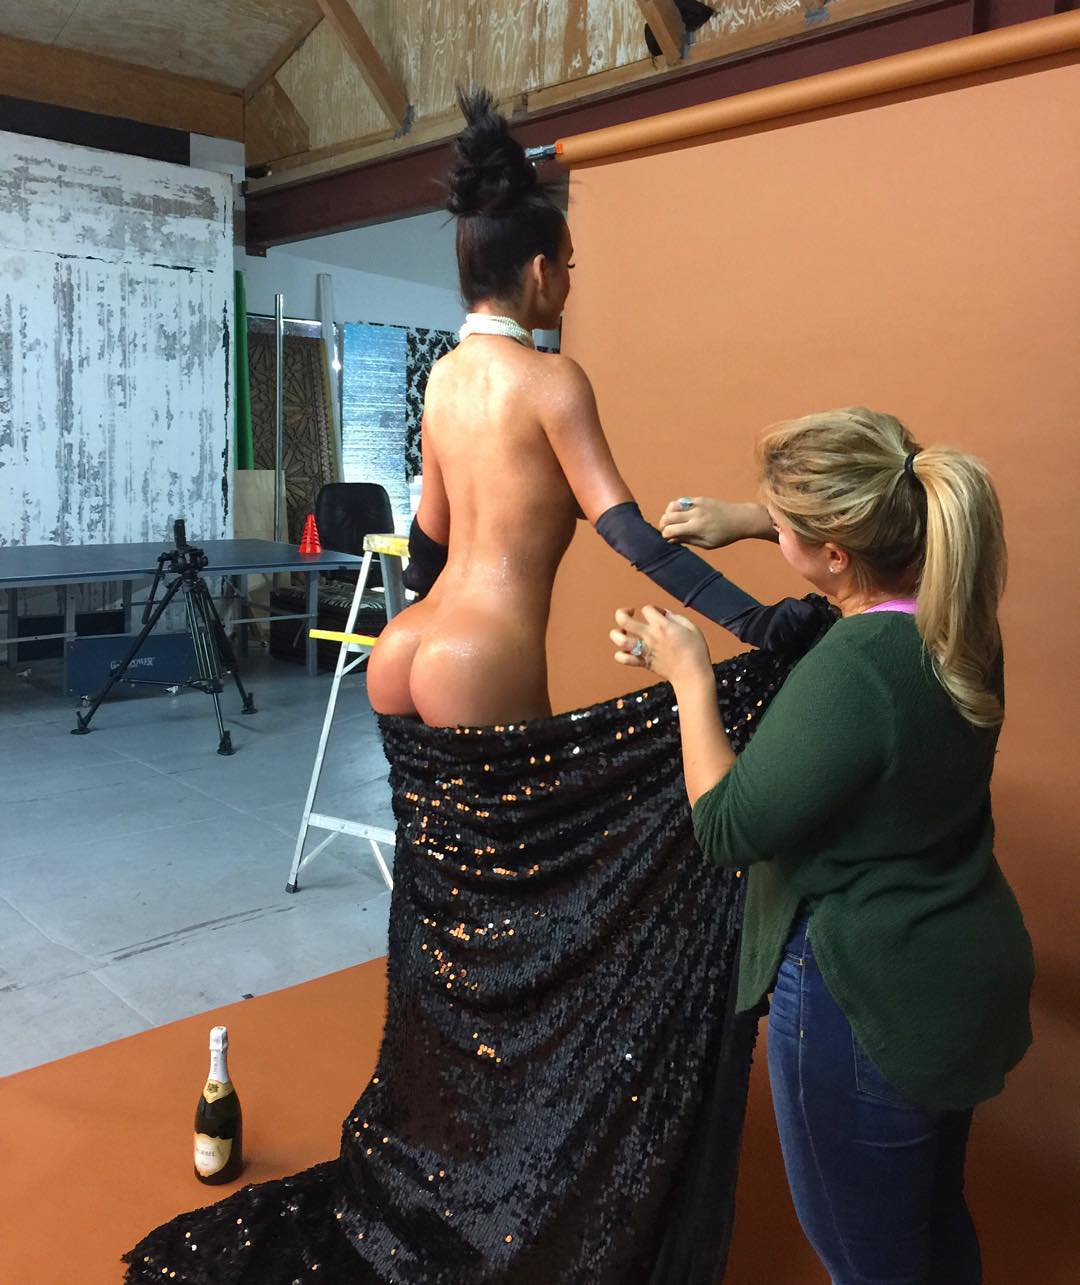 Abigail Ratchford Nude 001